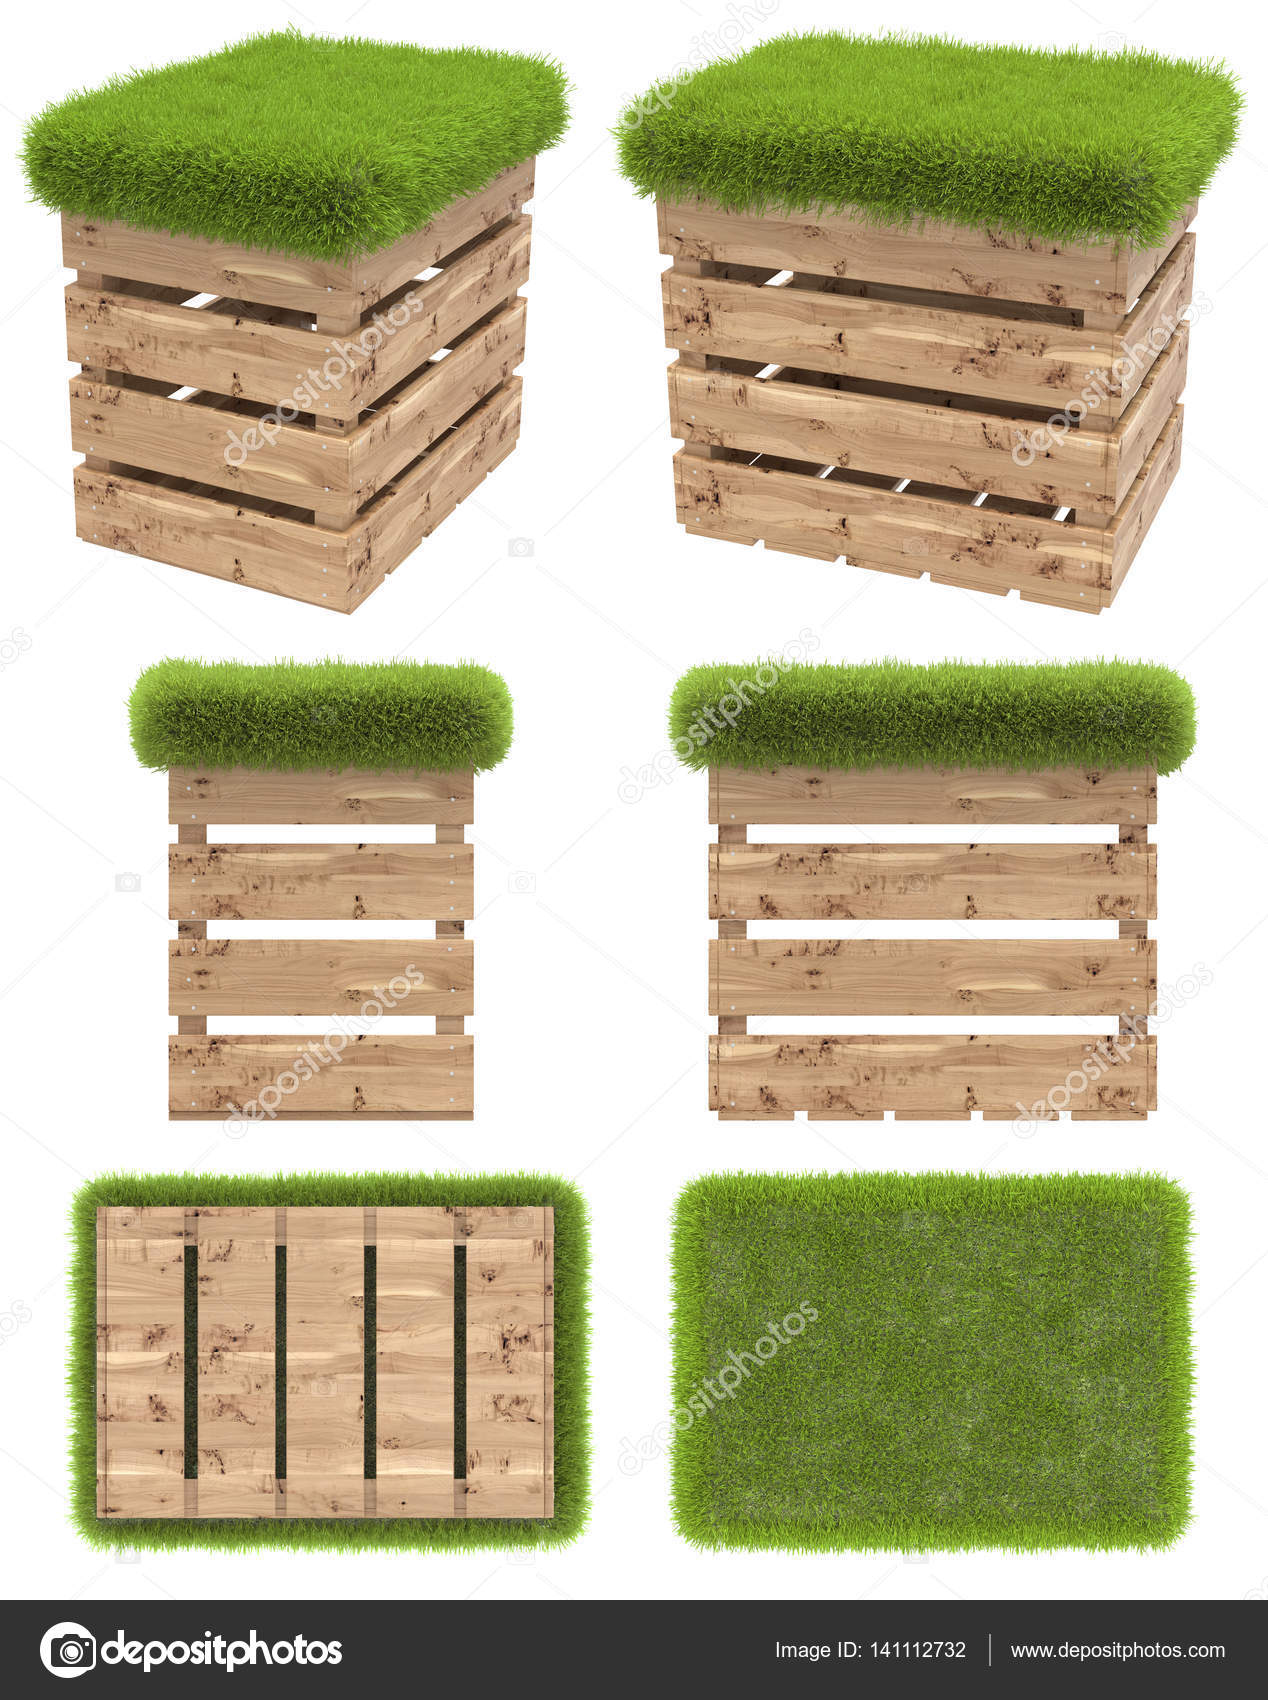 The Chair Of Wooden Box Or Pallet With A Seat Grass Garden Furniture Top View